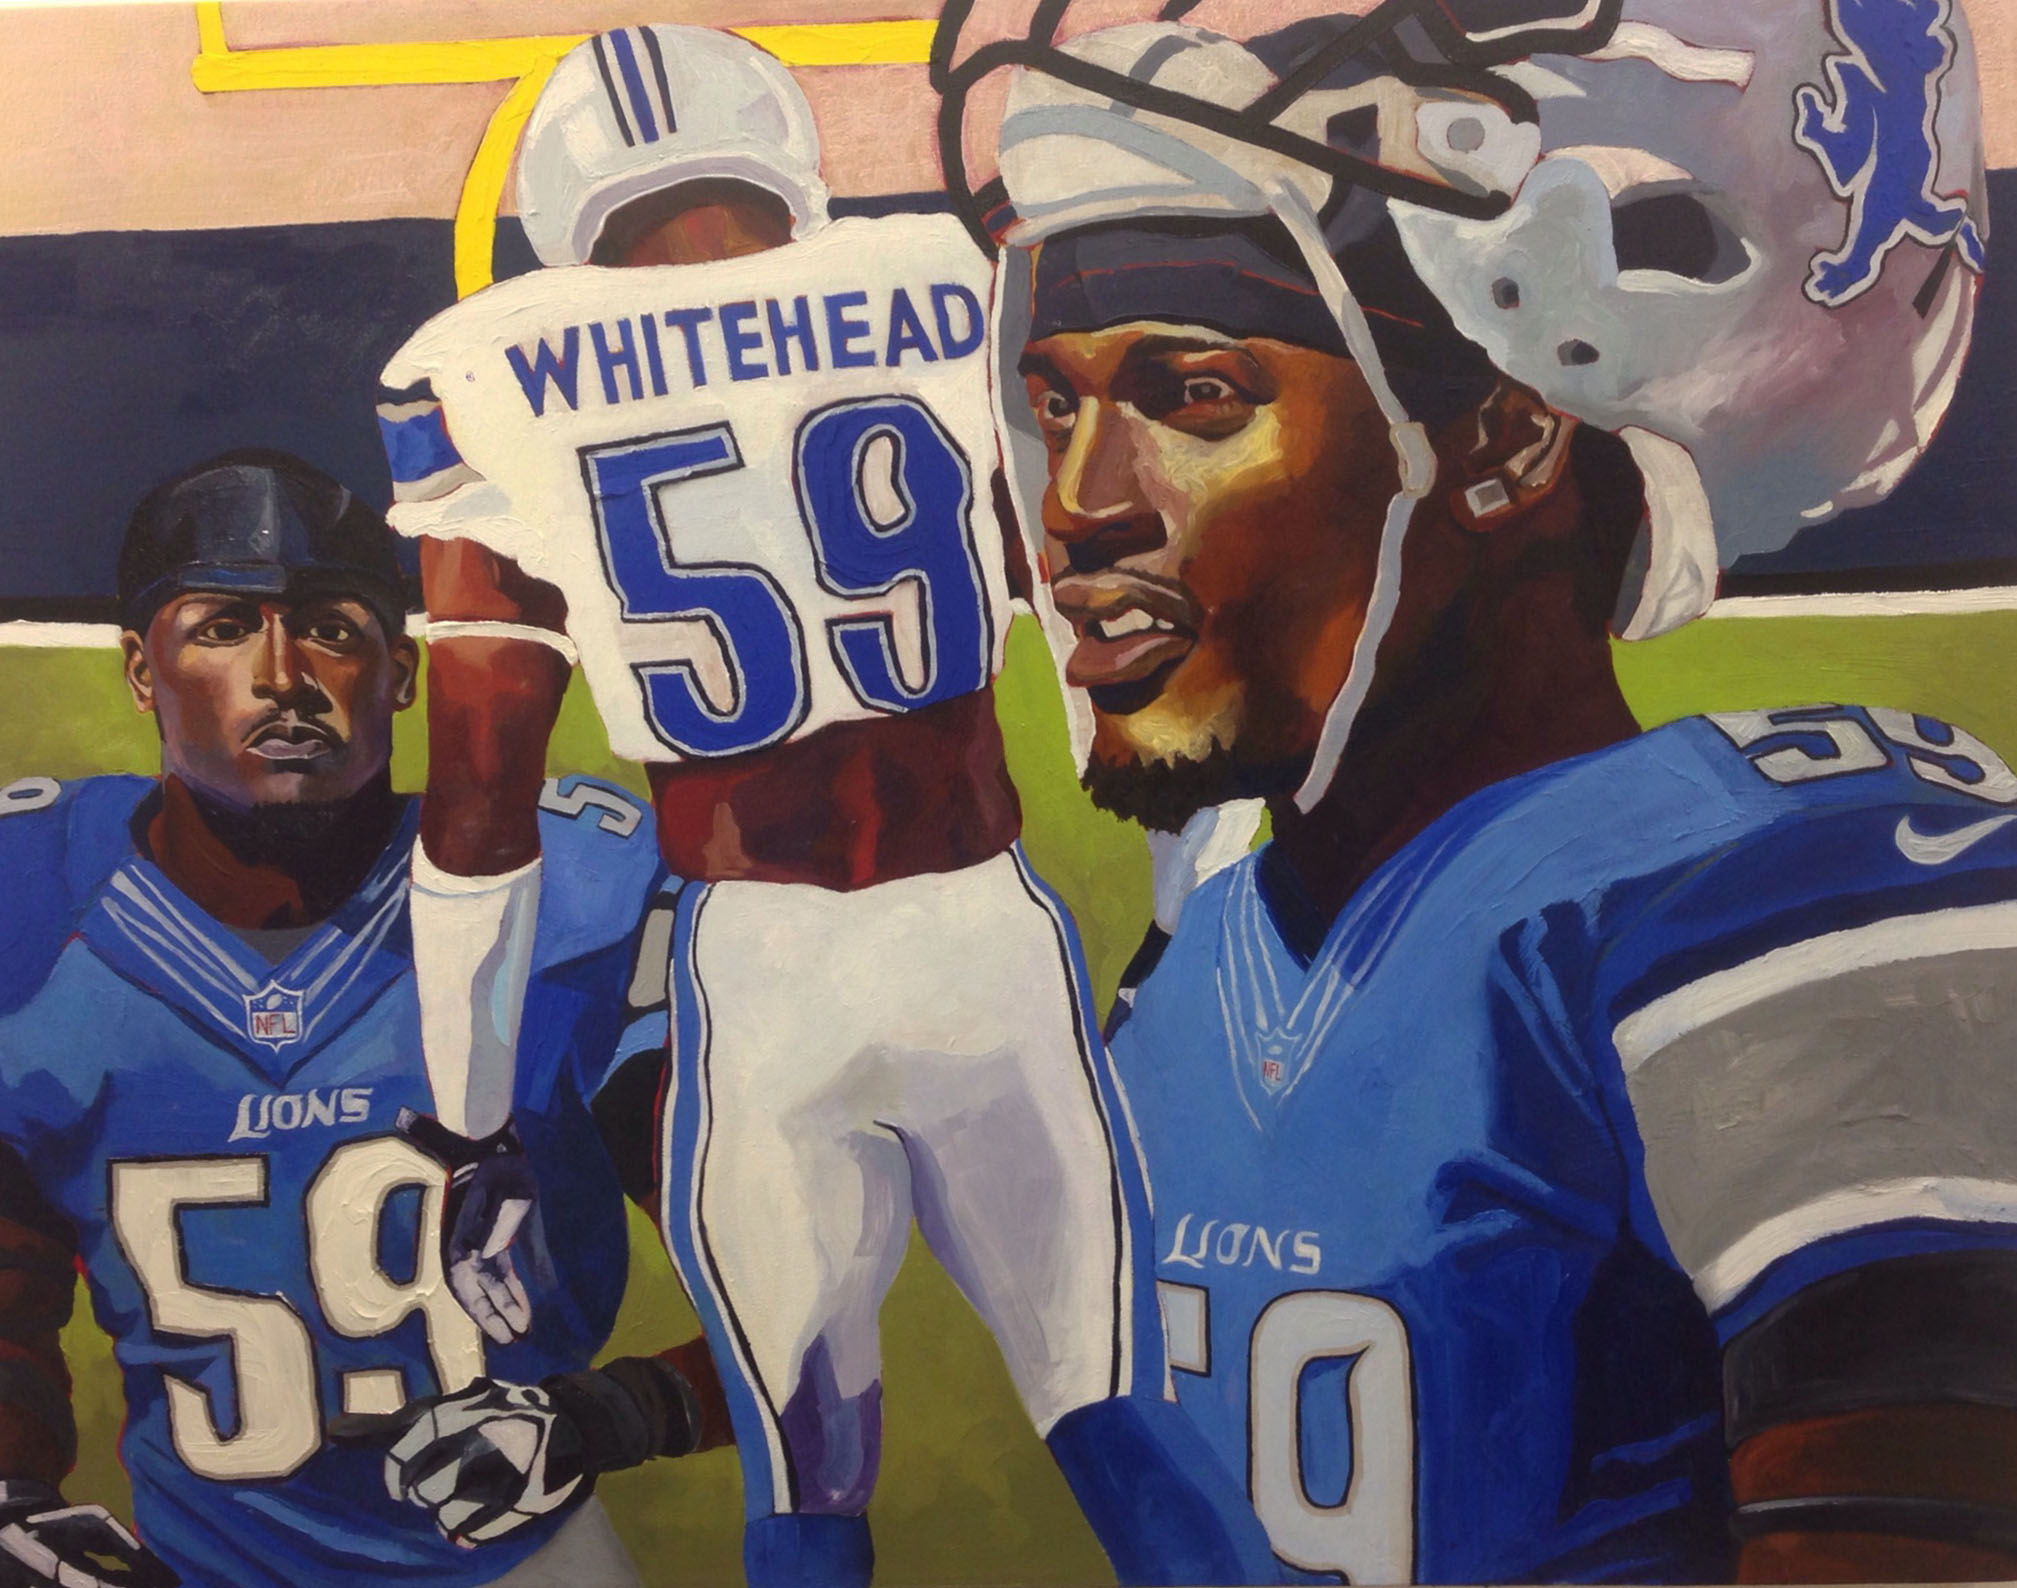 Whitehead Lions NFL